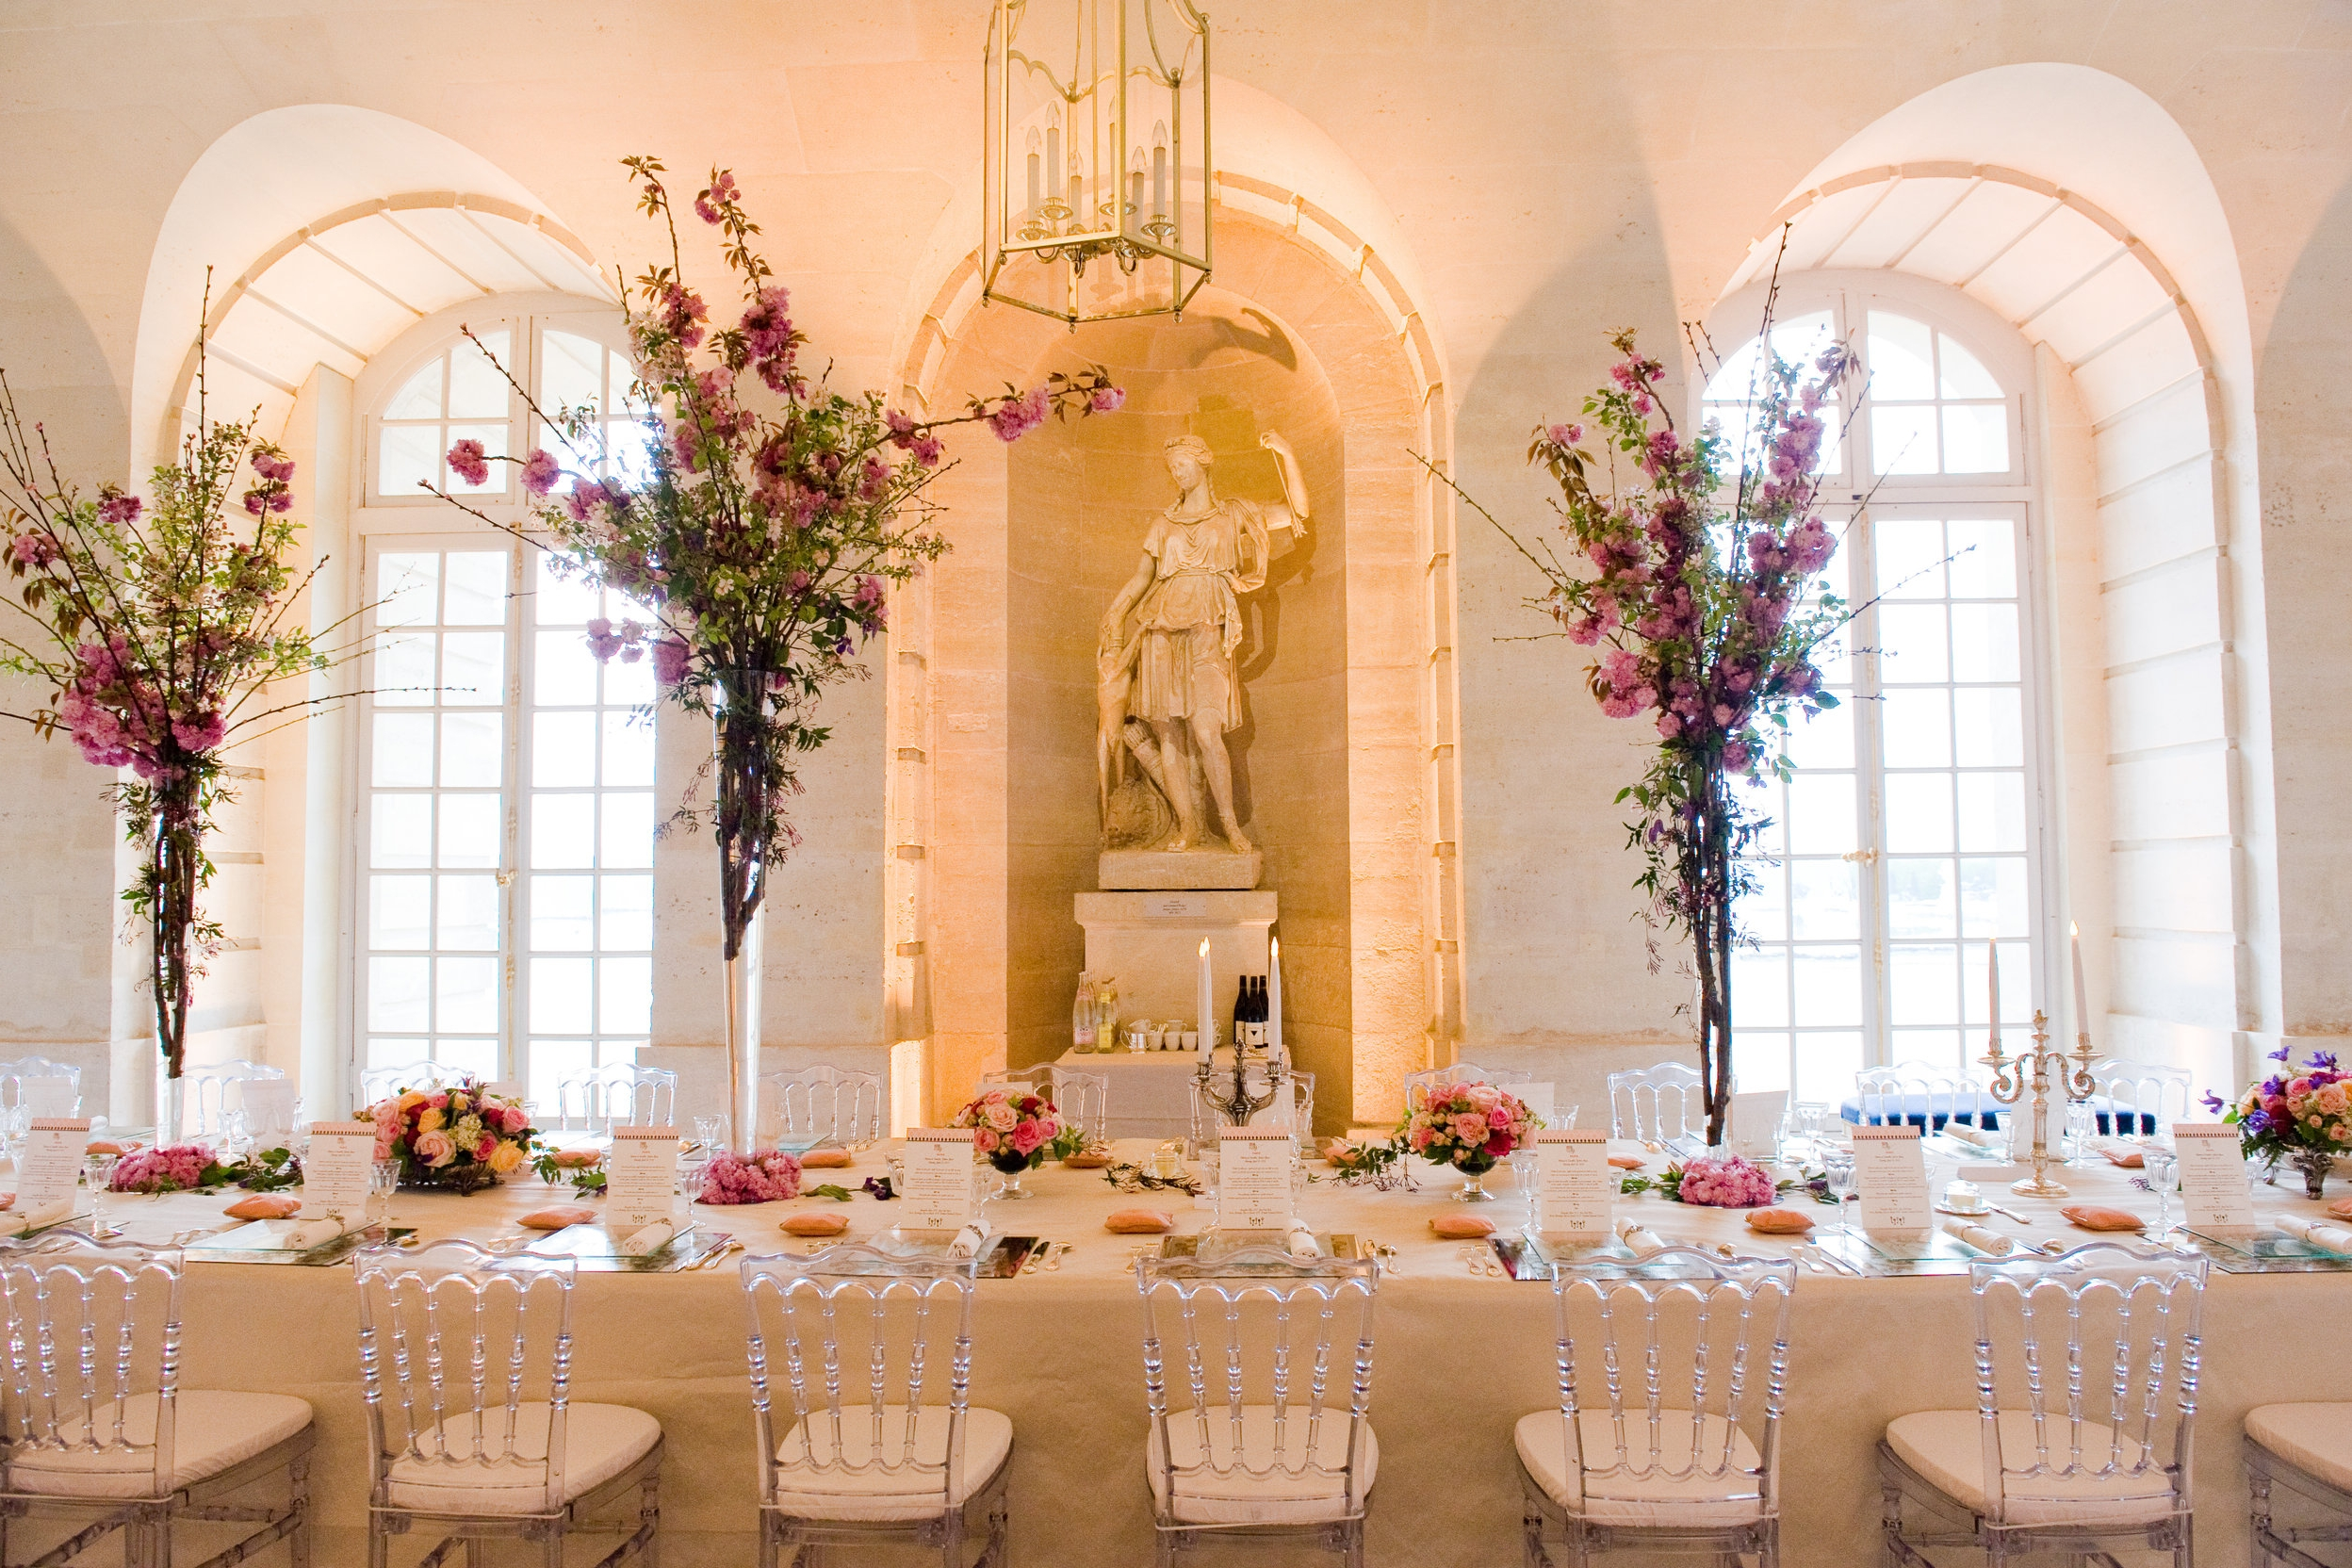 Intimate Dinner at Versailles - An evening designed as a modern soirée for Marie Antionette in the Palace of Versailles.